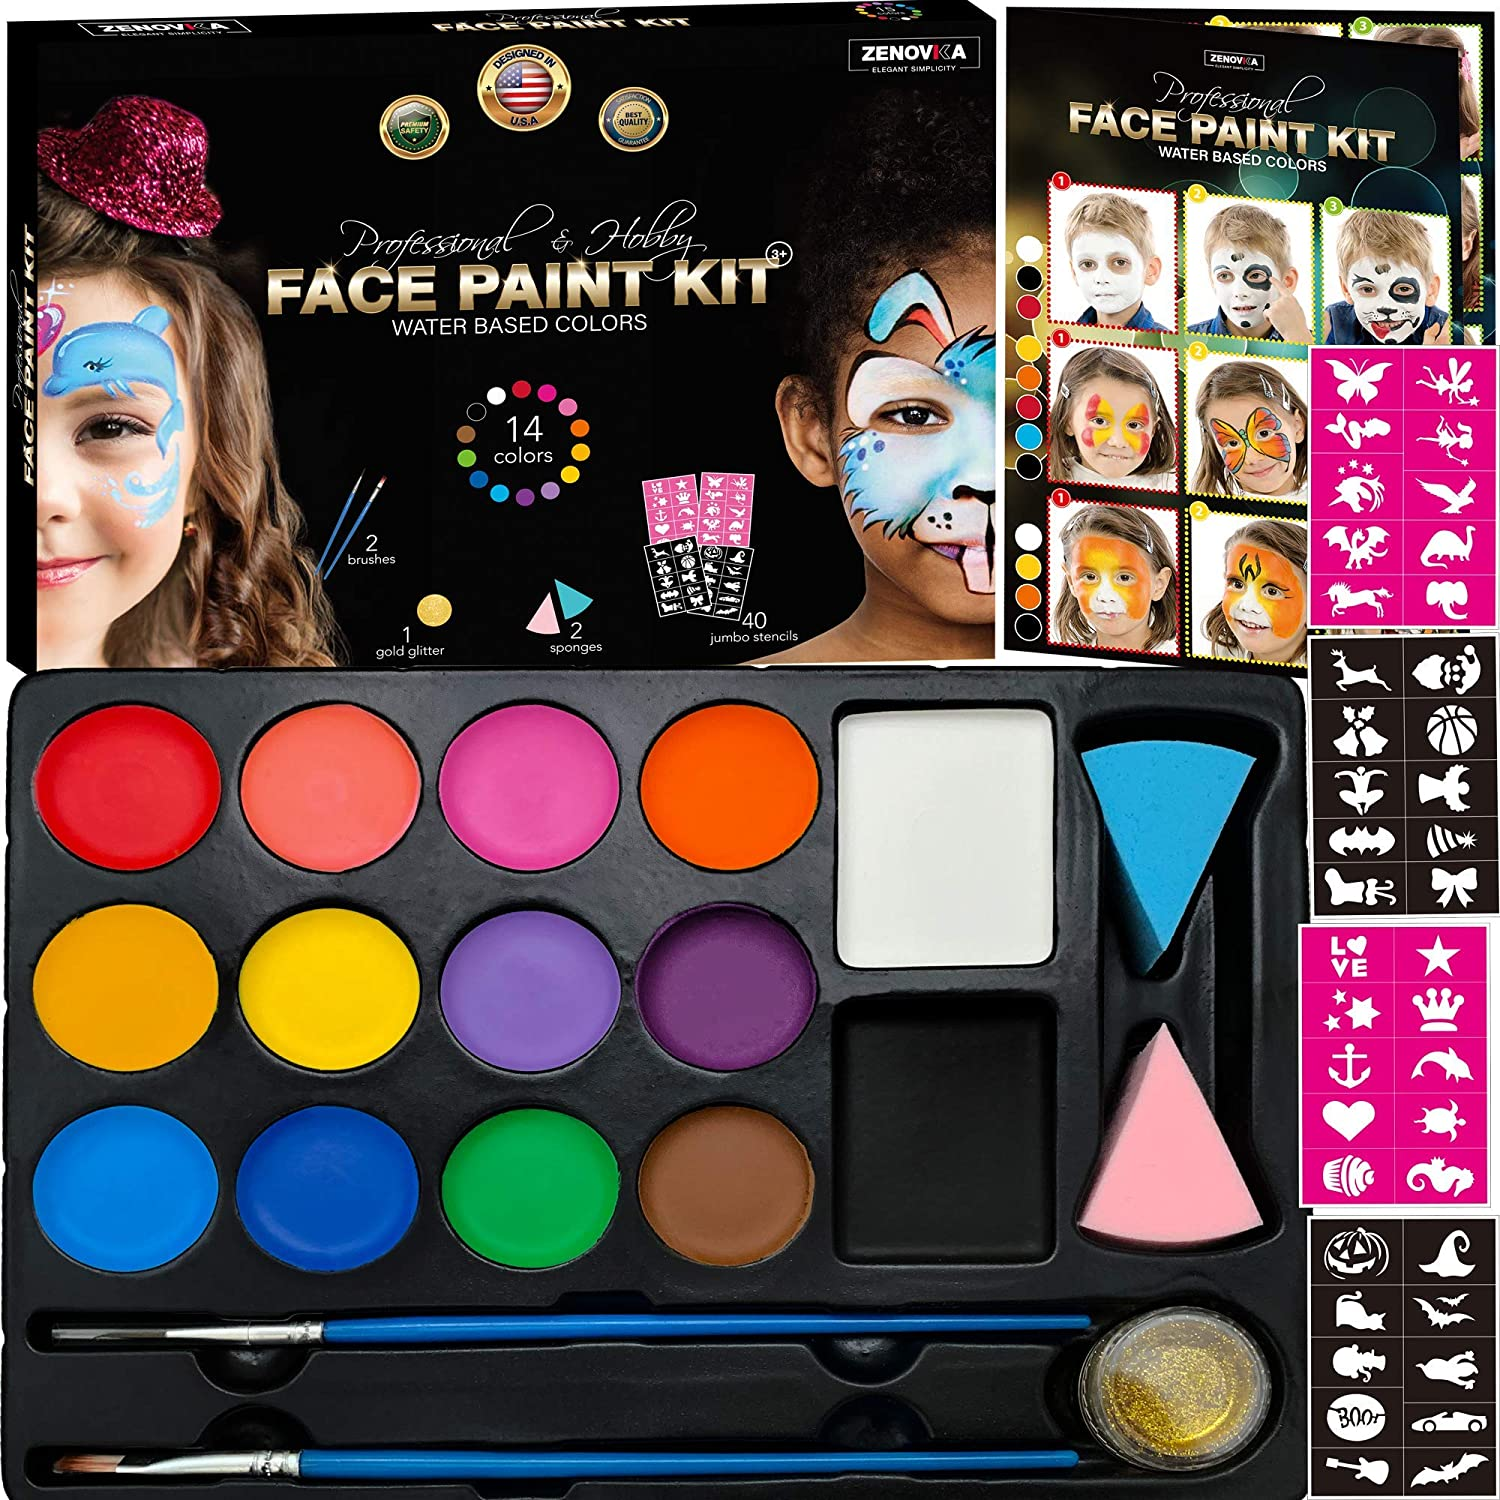 Top 9 Best Face Painting Kits (2020 Reviews & Buying Guide) 7